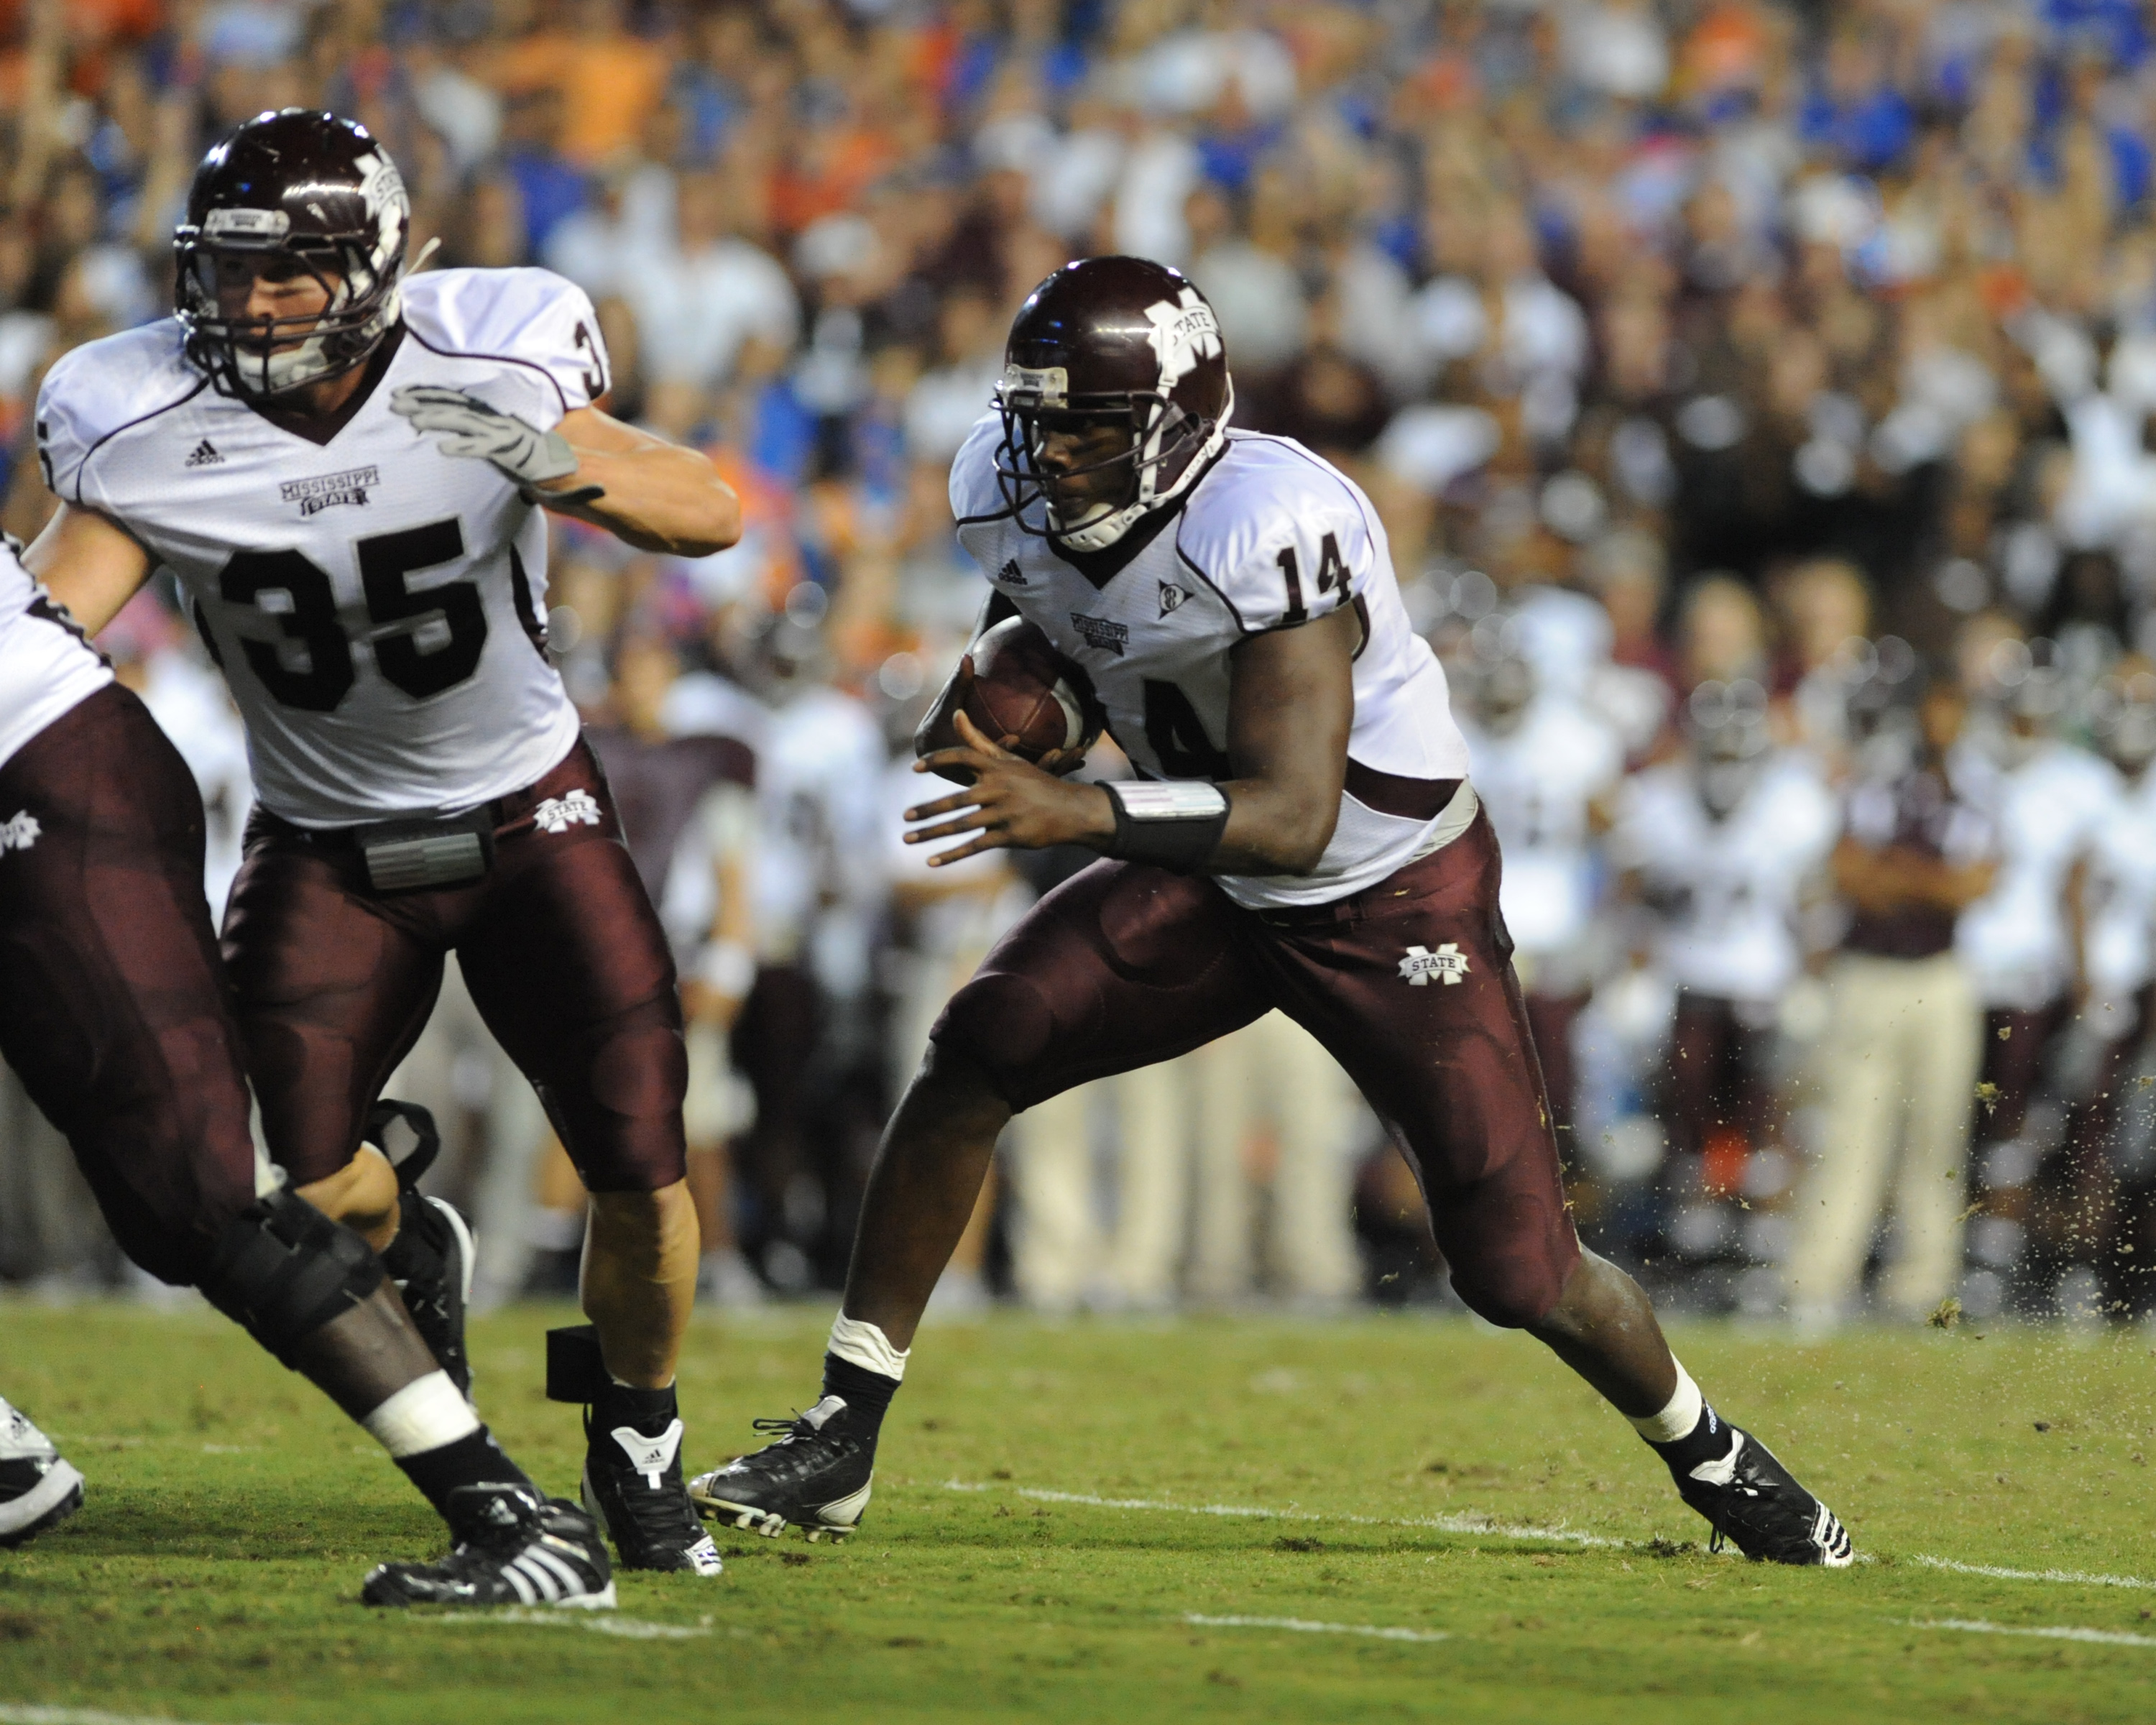 GAINESVILLE, FL - OCTOBER 16:  Quarterback Chris Relf #14 of the Mississippi State Bulldogs runs for a touchdown against the Florida Gators October 16, 2010 Ben Hill Griffin Stadium at Gainesville, Florida.  (Photo by Al Messerschmidt/Getty Images)